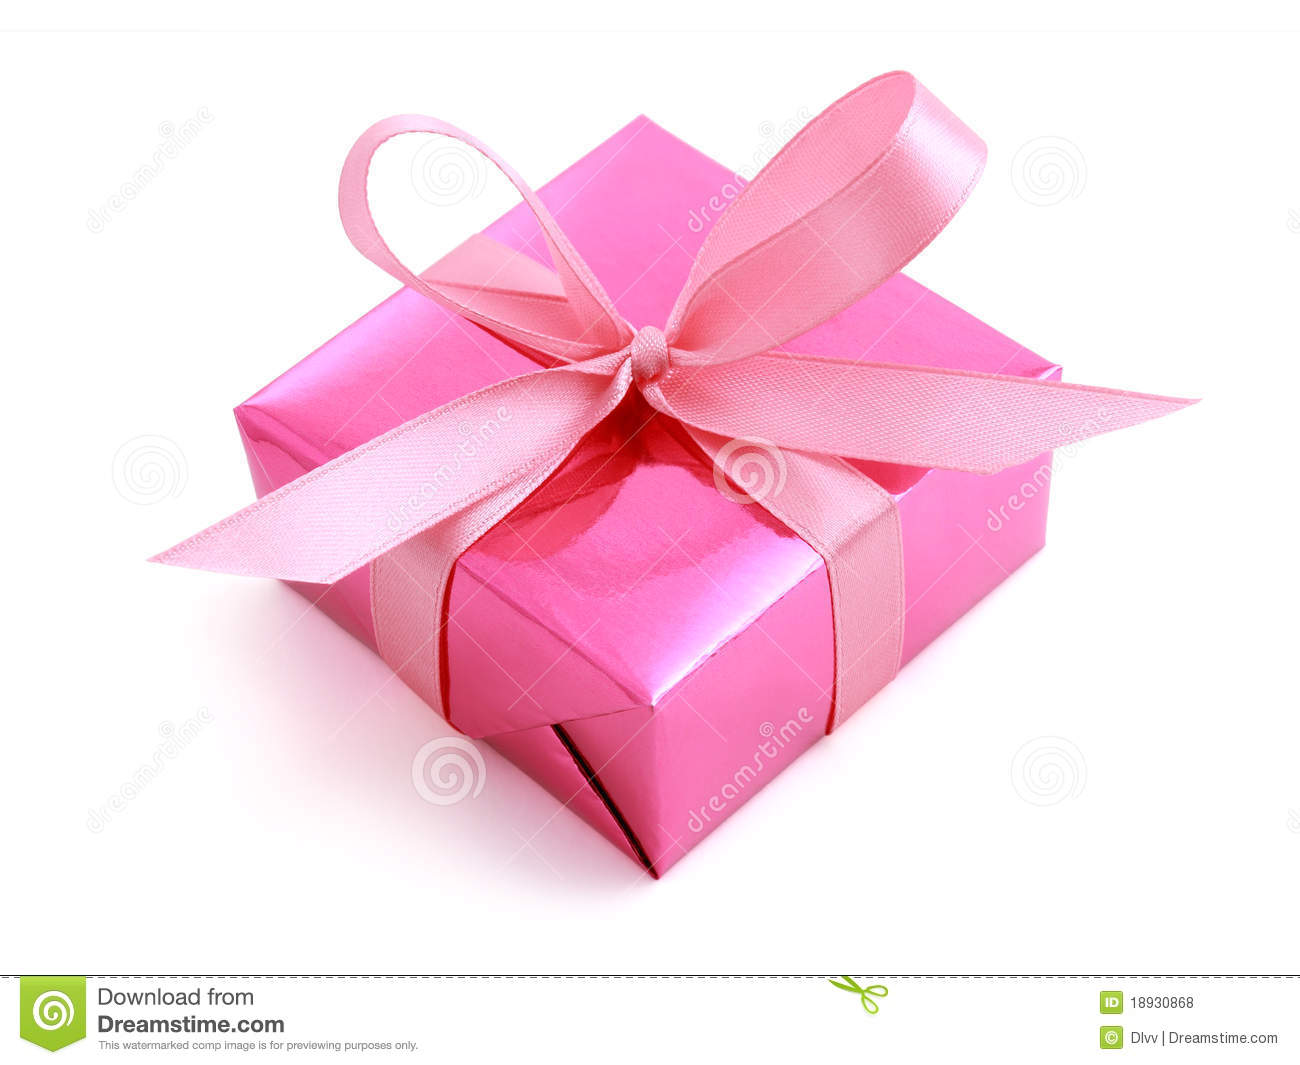 Pink Gift Wrapped Present Royalty Free Stock Photos - Image: 18930868